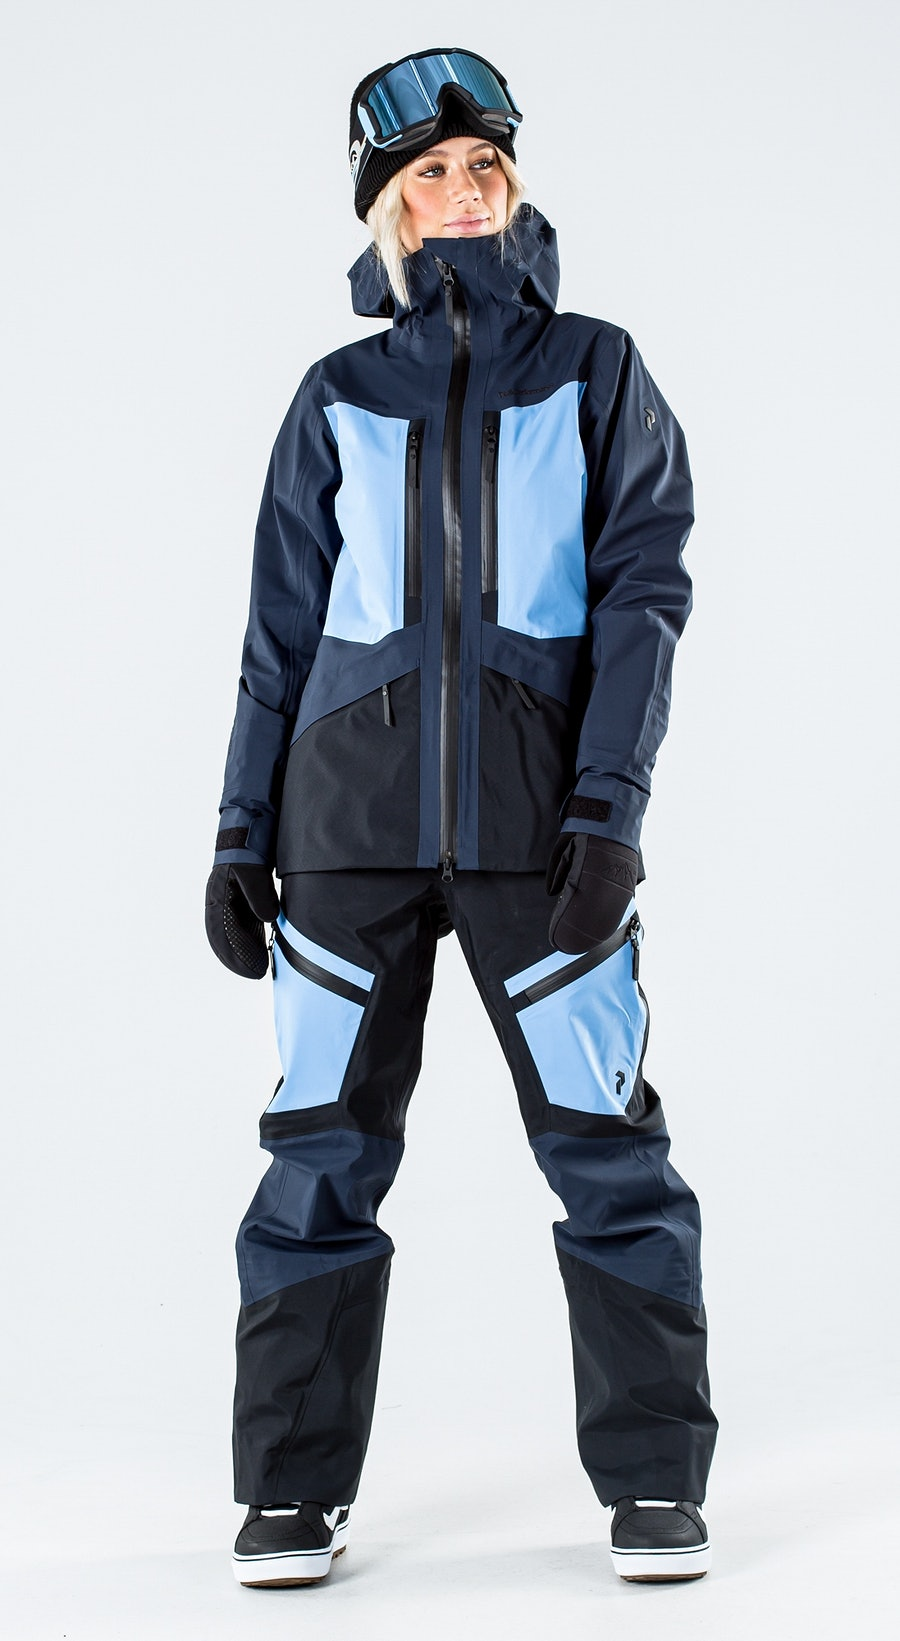 Peak Performance Gravity Blue Shadow Snowboardkläder Multi